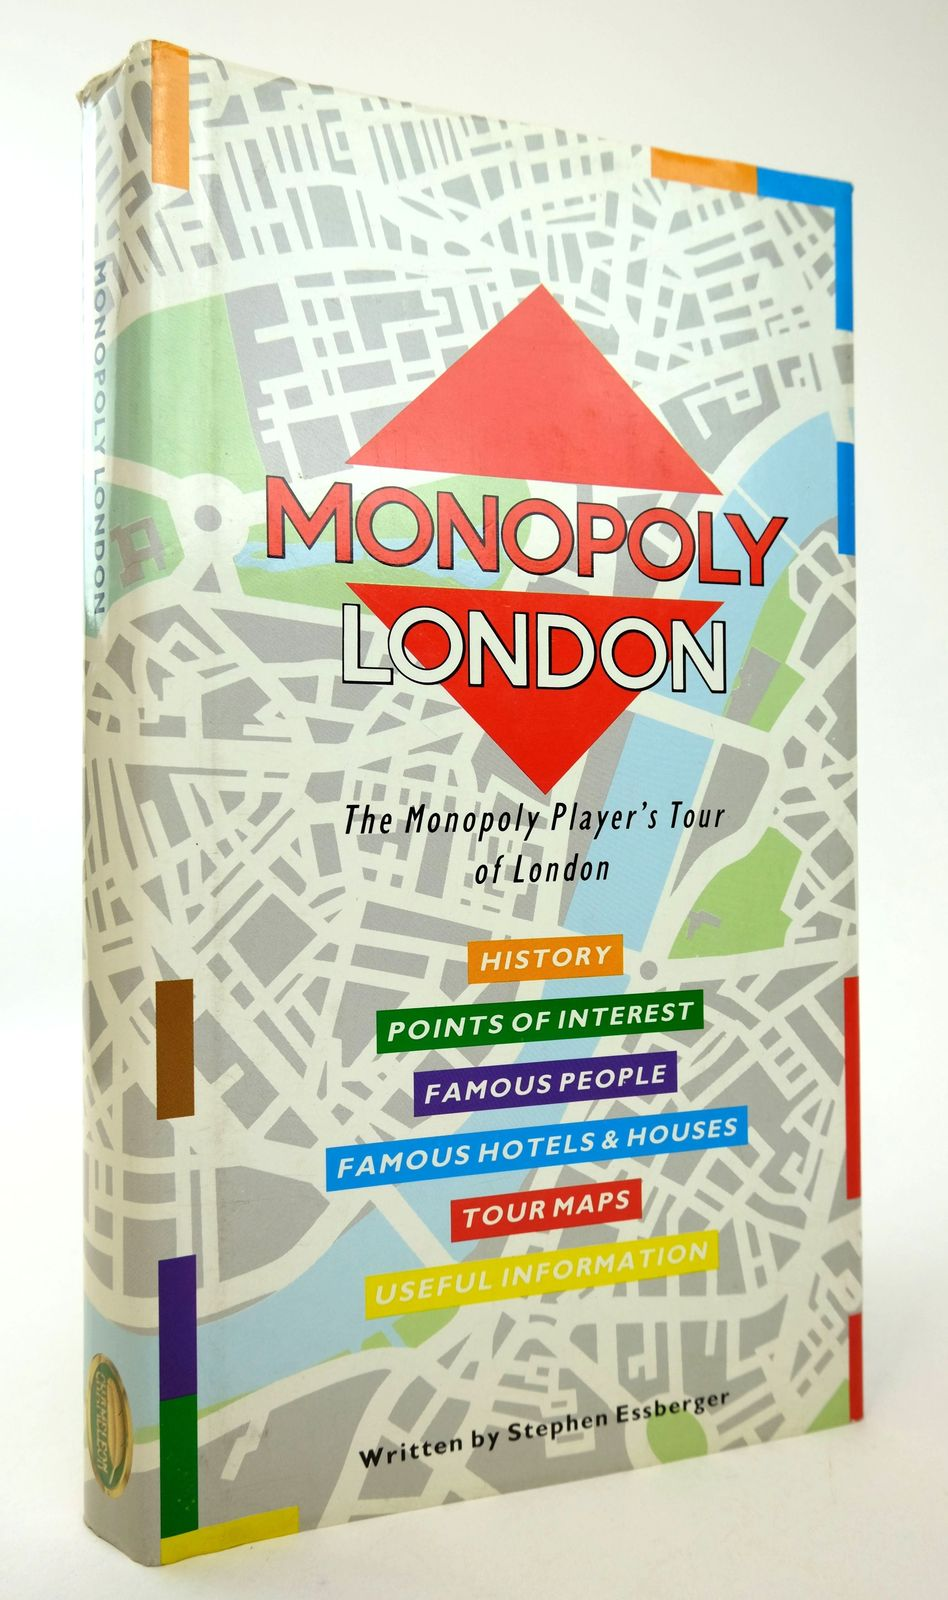 Photo of MONOPOLY LONDON: THE MONOPOLY PLAYER'S TOUR OF LONDON written by Essberger, Stephen published by Chameleon Publishing, Fotobank Books Ltd (STOCK CODE: 1818745)  for sale by Stella & Rose's Books